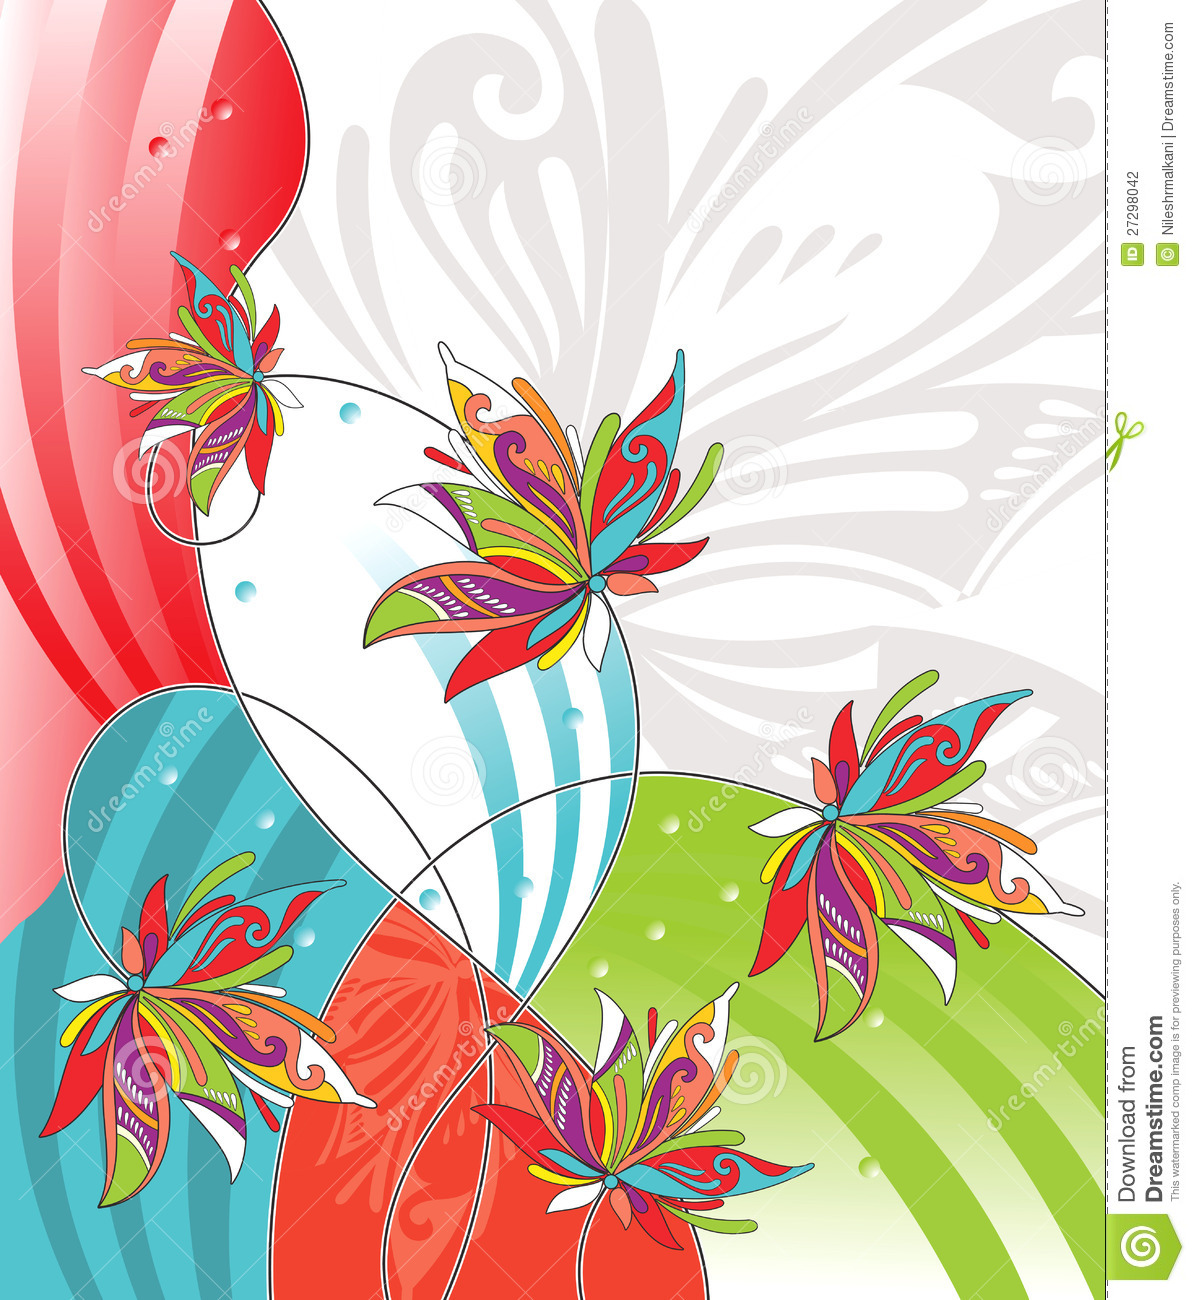 Vector Flower Design For Greeting Card Illustration 27298042 Megapixl